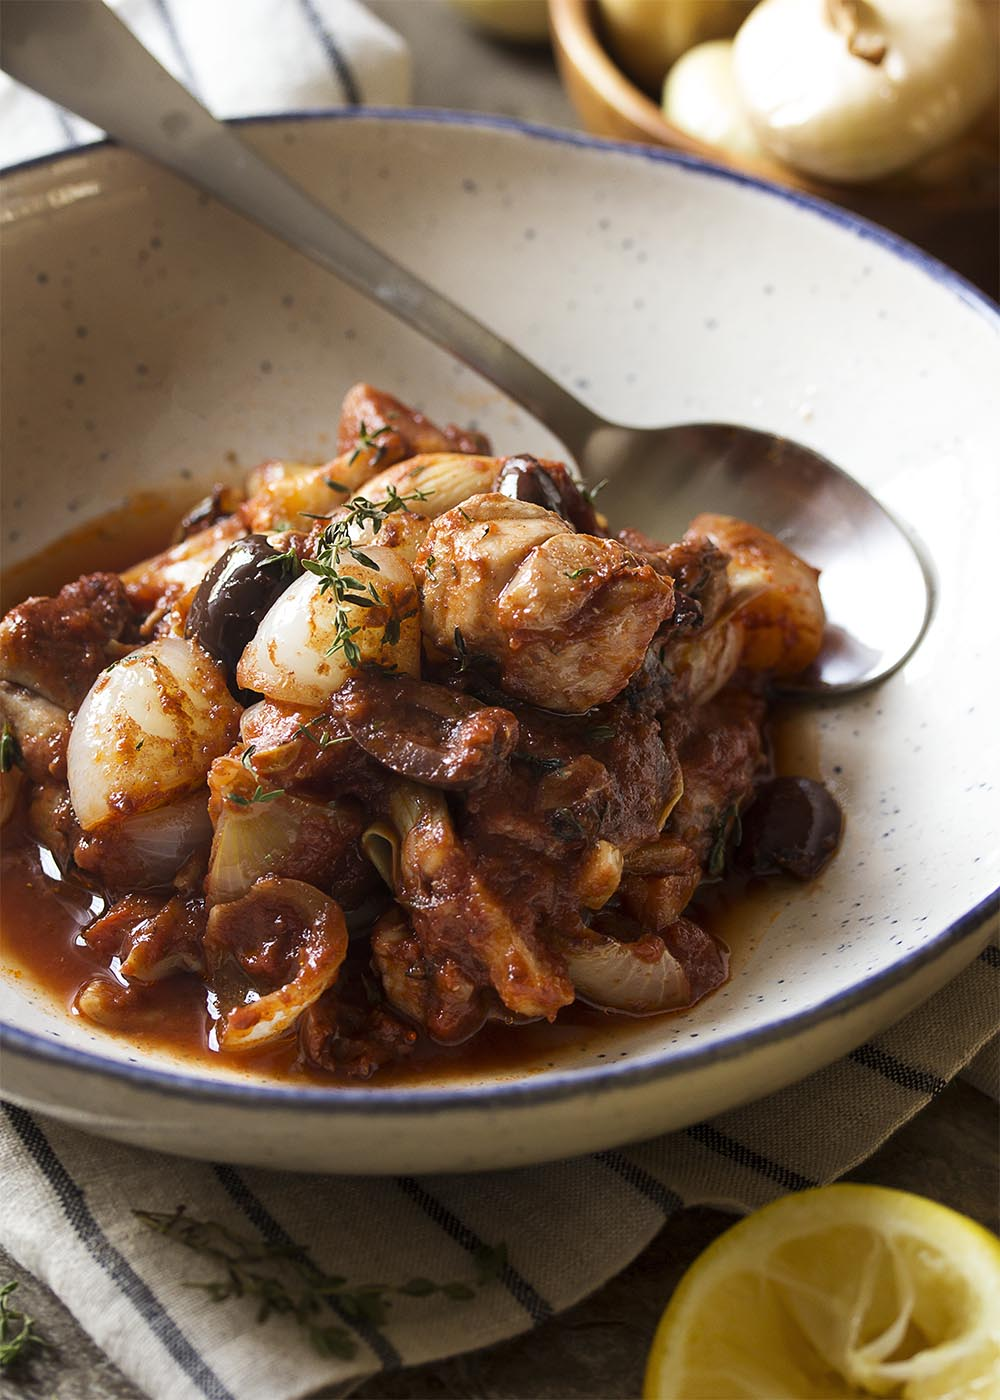 A bowl of chicken stifado showing the diced chicken, olives, onions, and artichokes all covered with a rich tomato sauce.